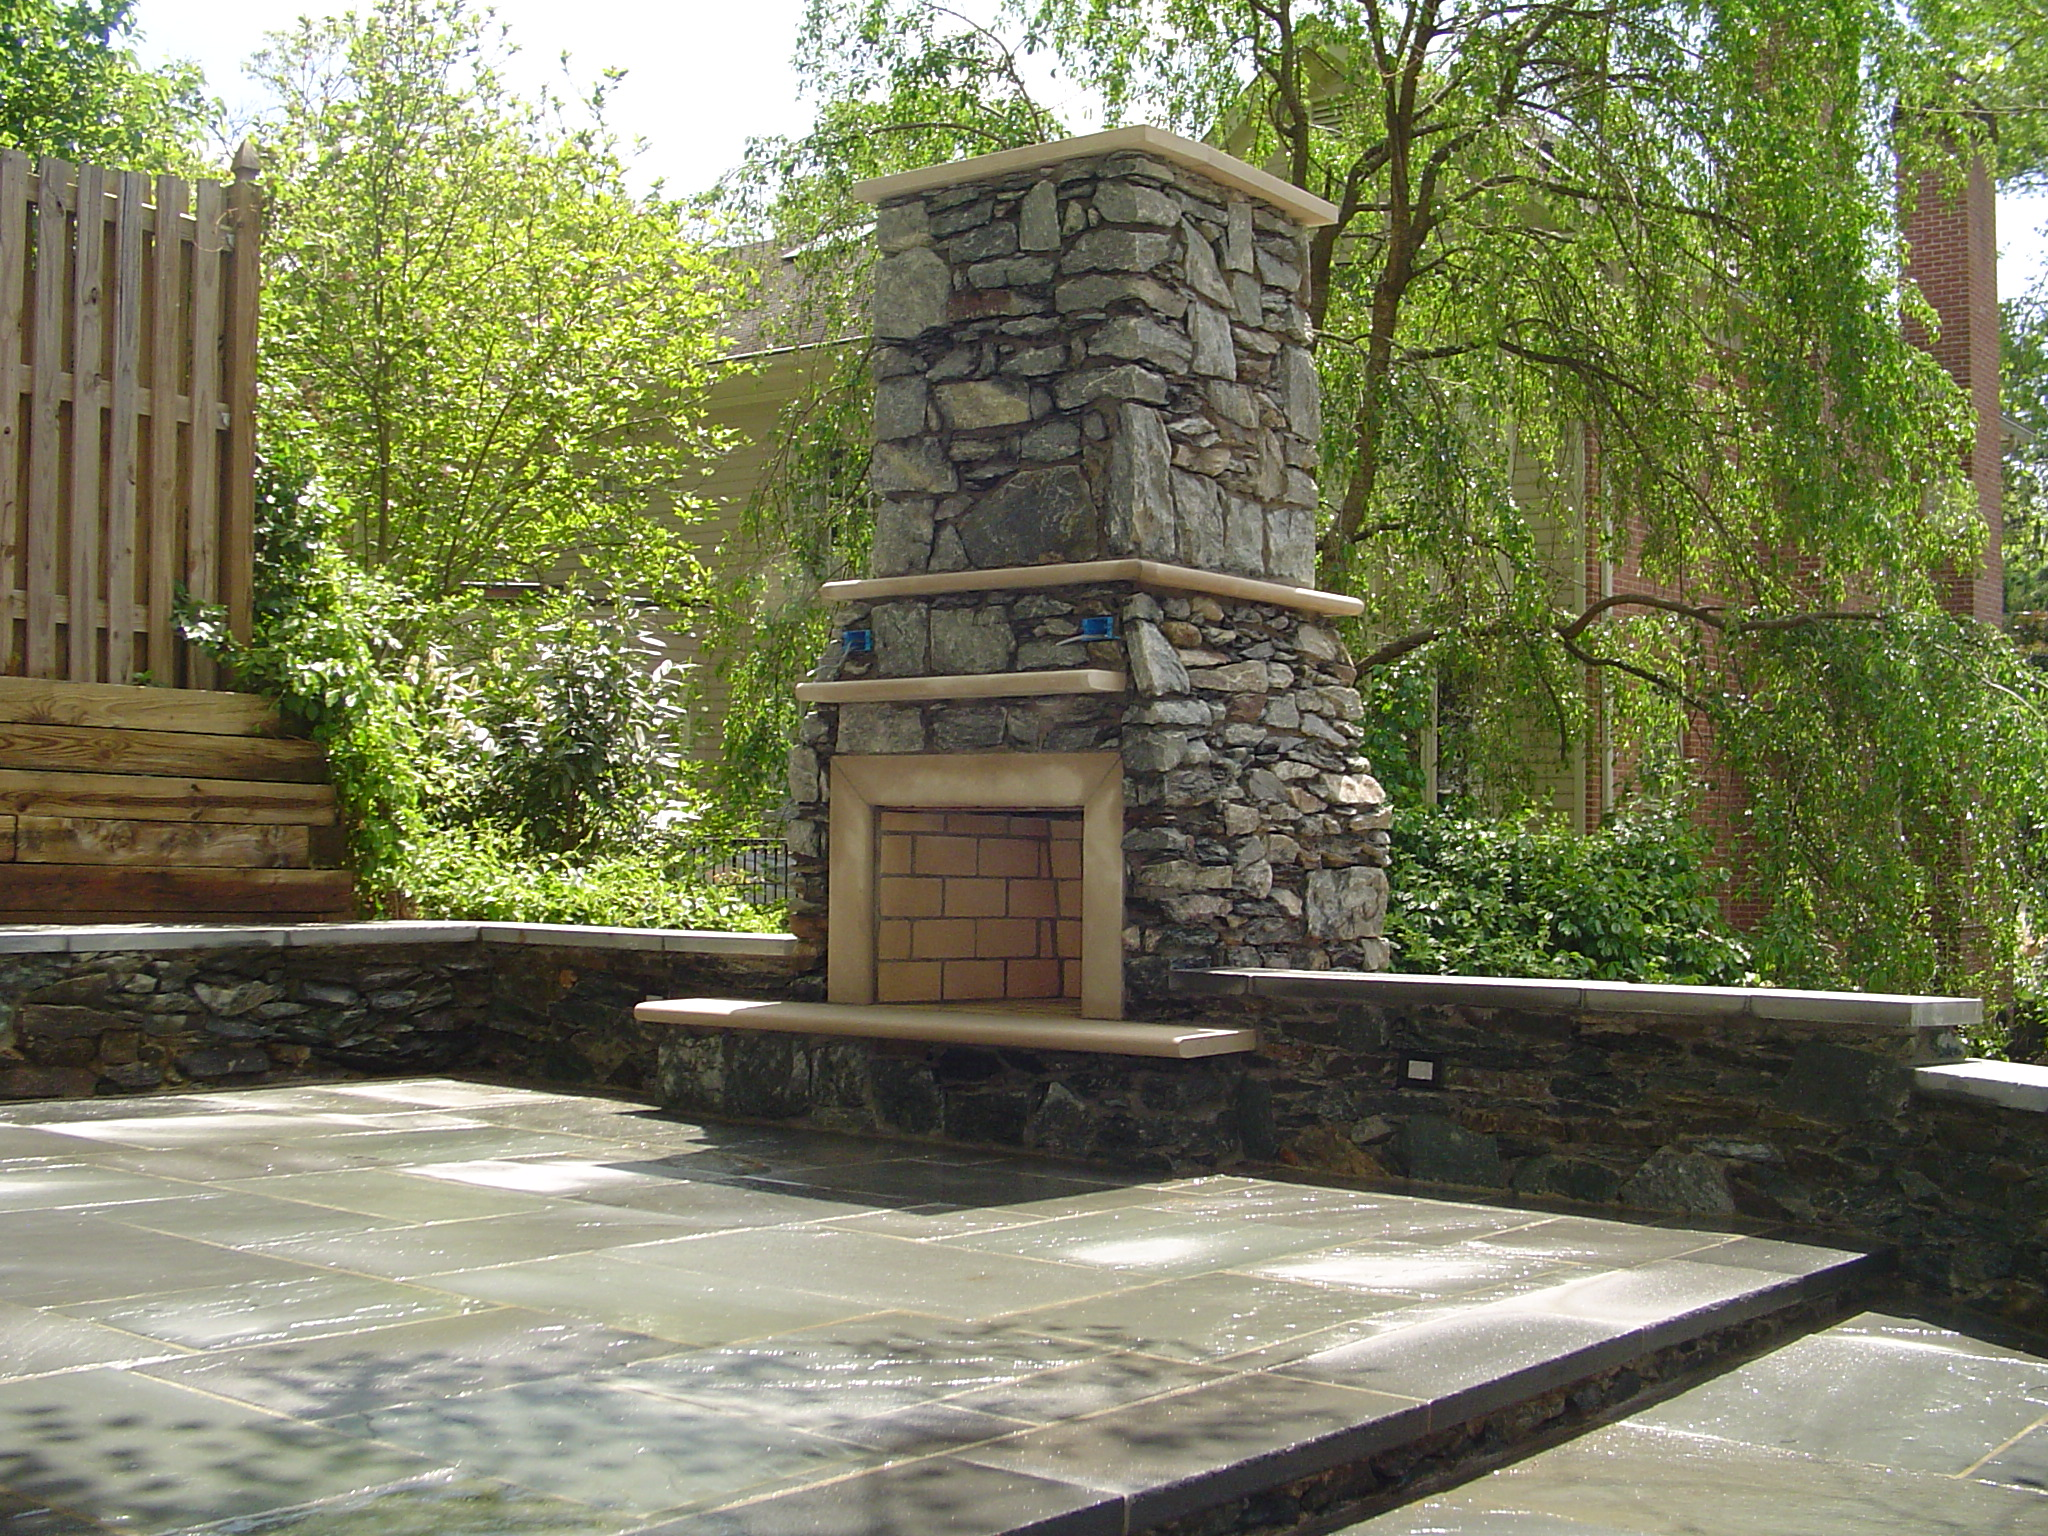 Outdoor fireplace/oven